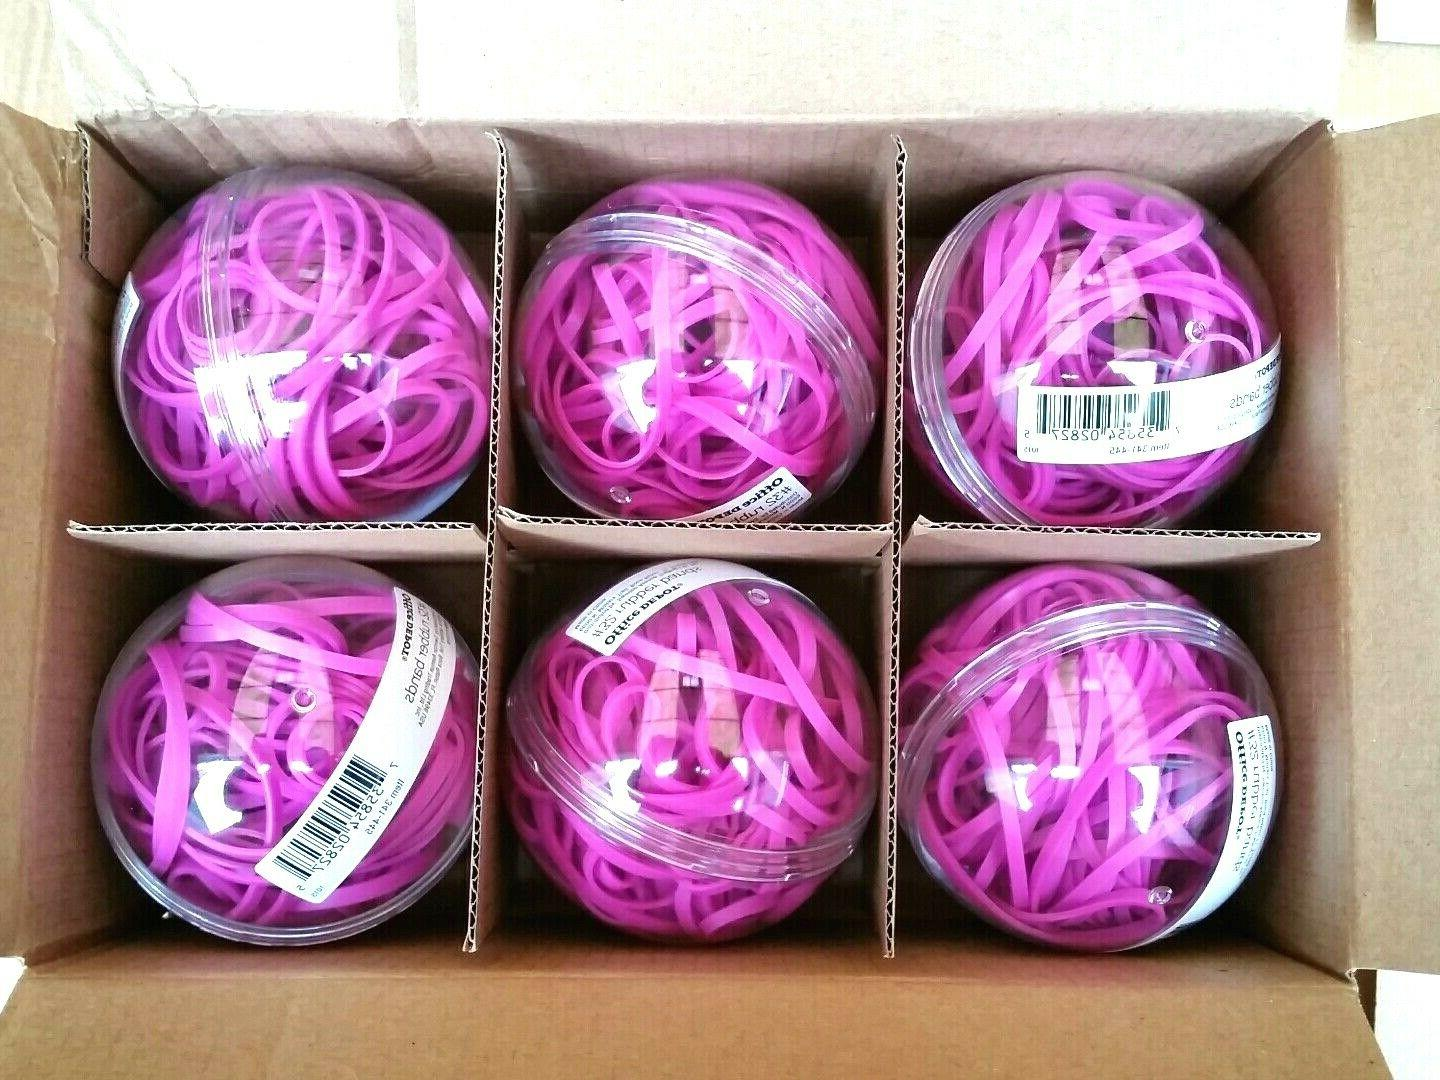 Office Depot Rubber Band Balls - Sz 32 Magenta Colored Part